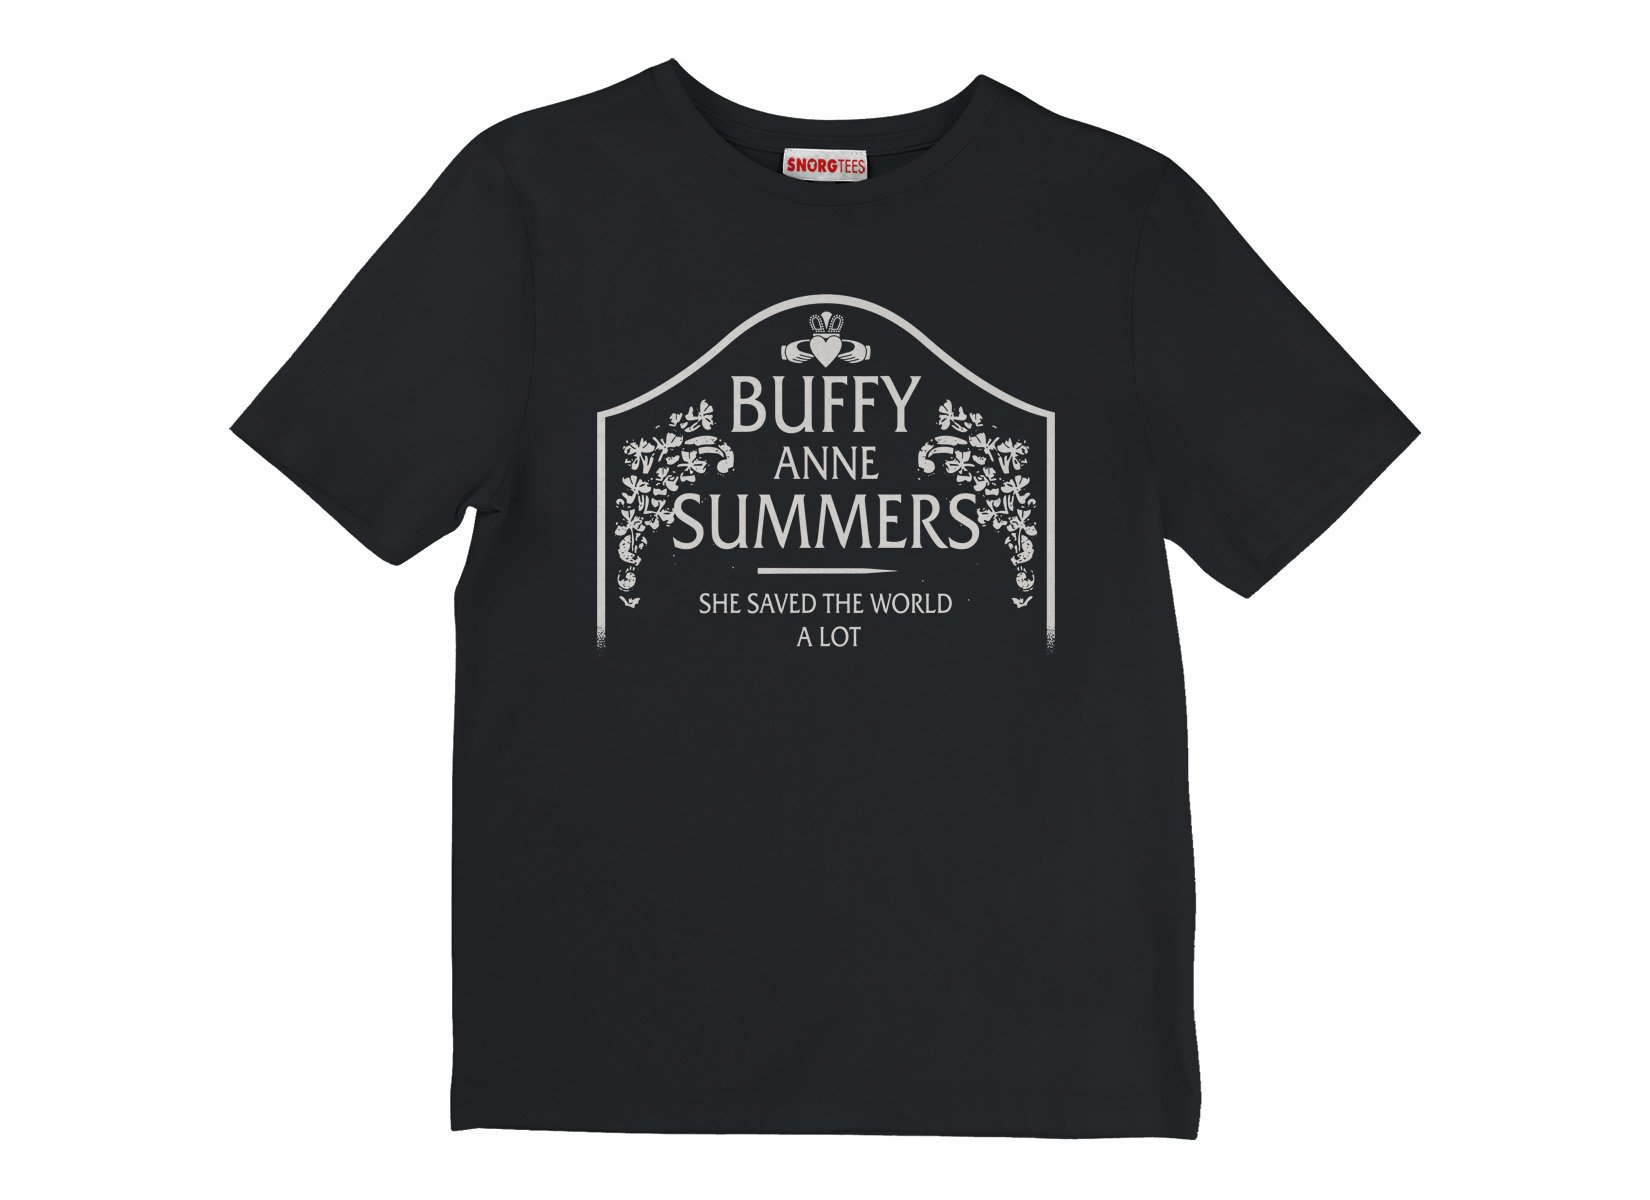 Buffy Anne Summers on Kids T-Shirt